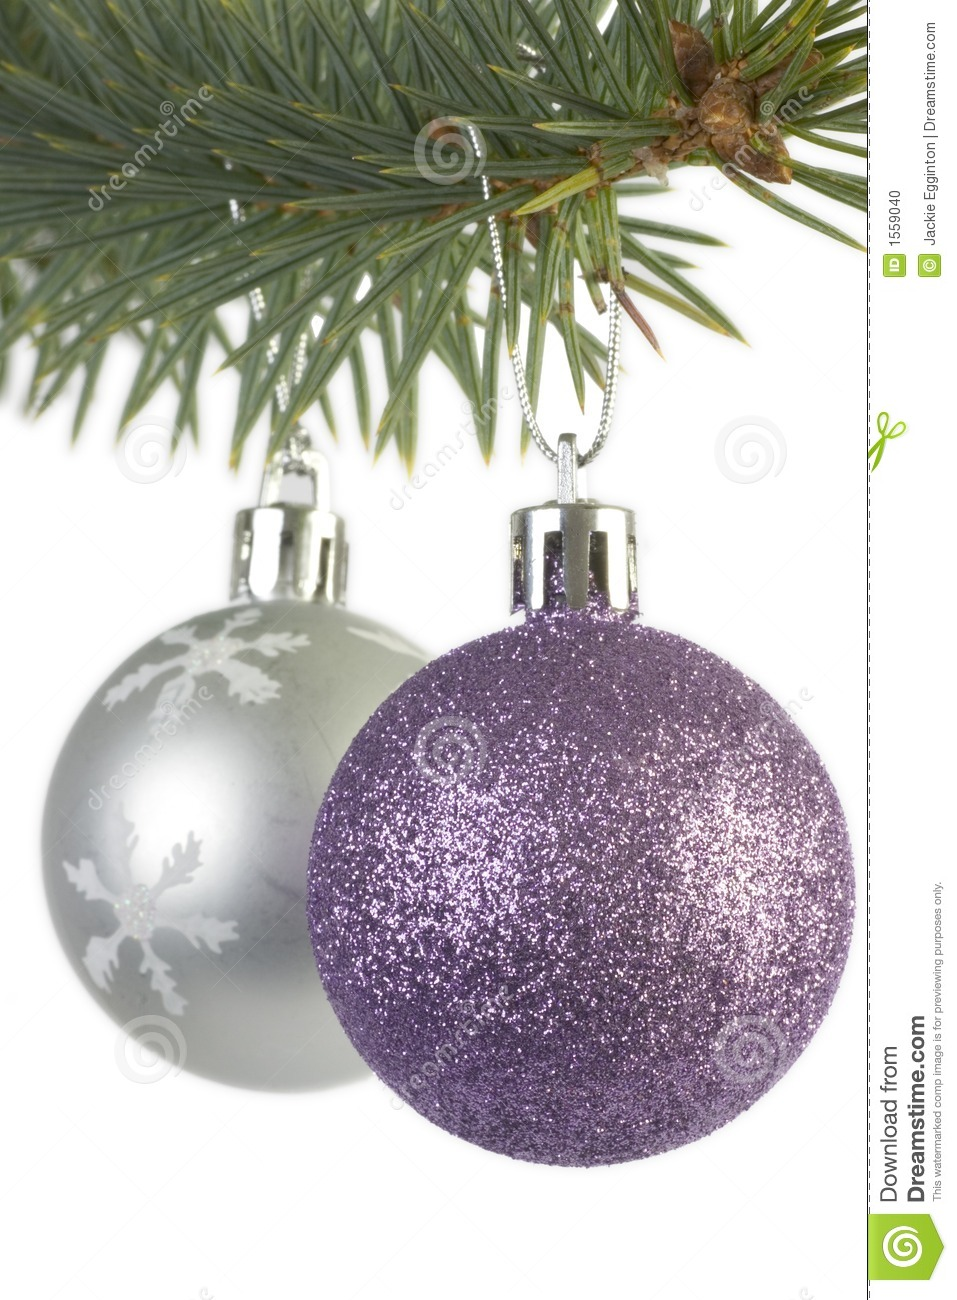 Christmas tree decorations purple and silver - Silver And Purple Christmas Decorations